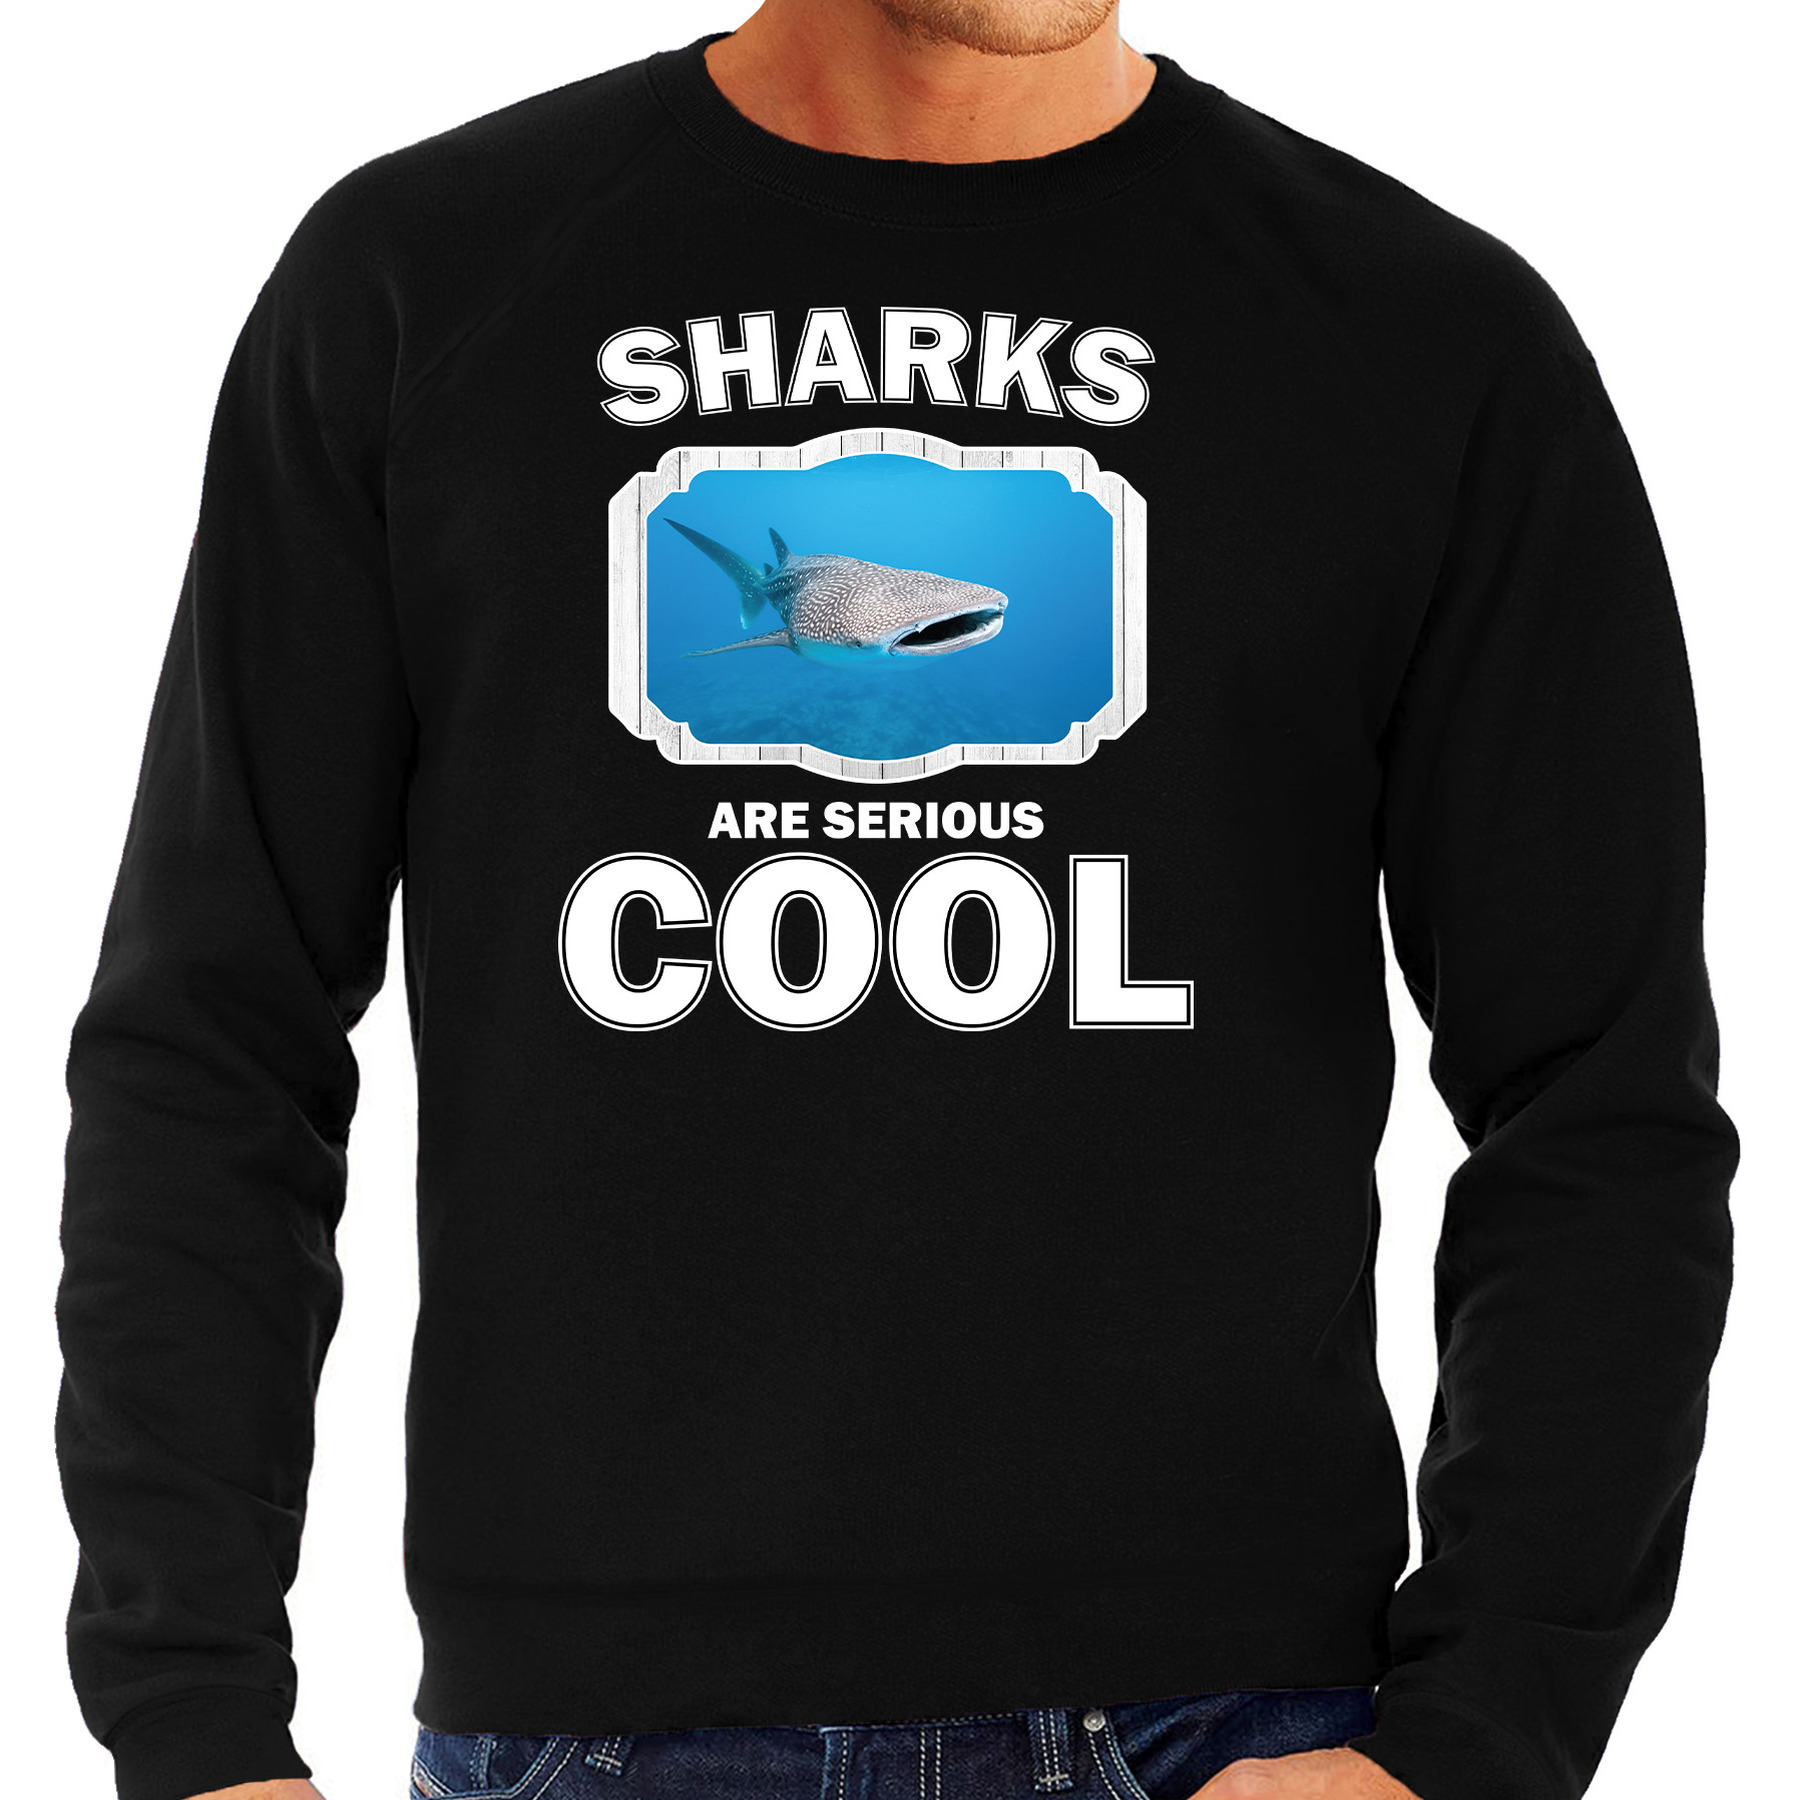 Sweater sharks are serious cool zwart heren - haaien/ walvishaai trui